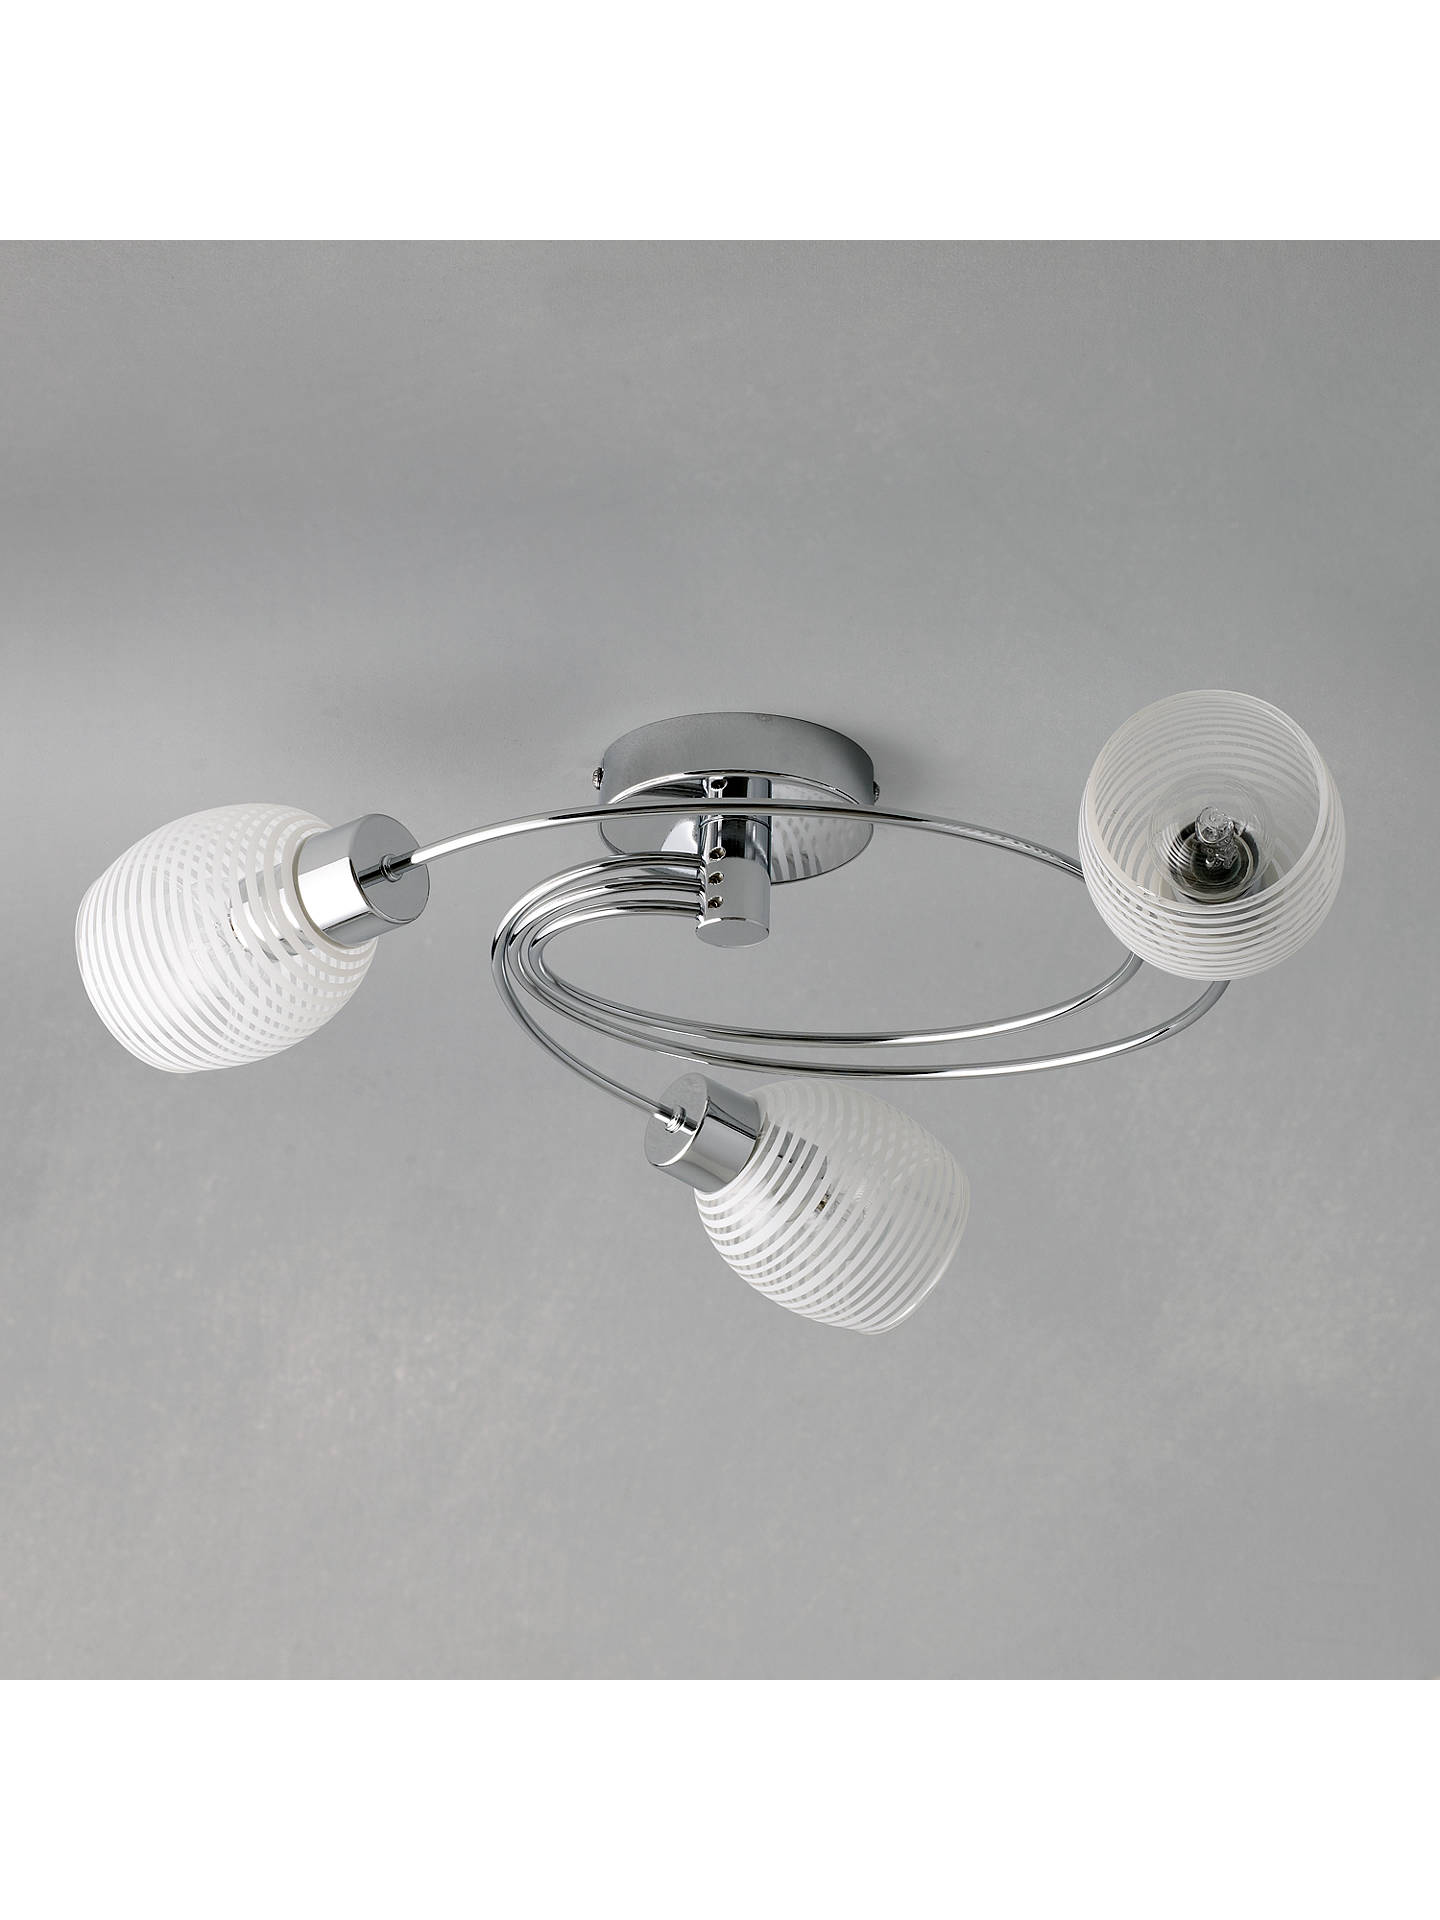 BuyJohn Lewis & Partners Maya 3 Arm Ceiling Light Online at johnlewis.com